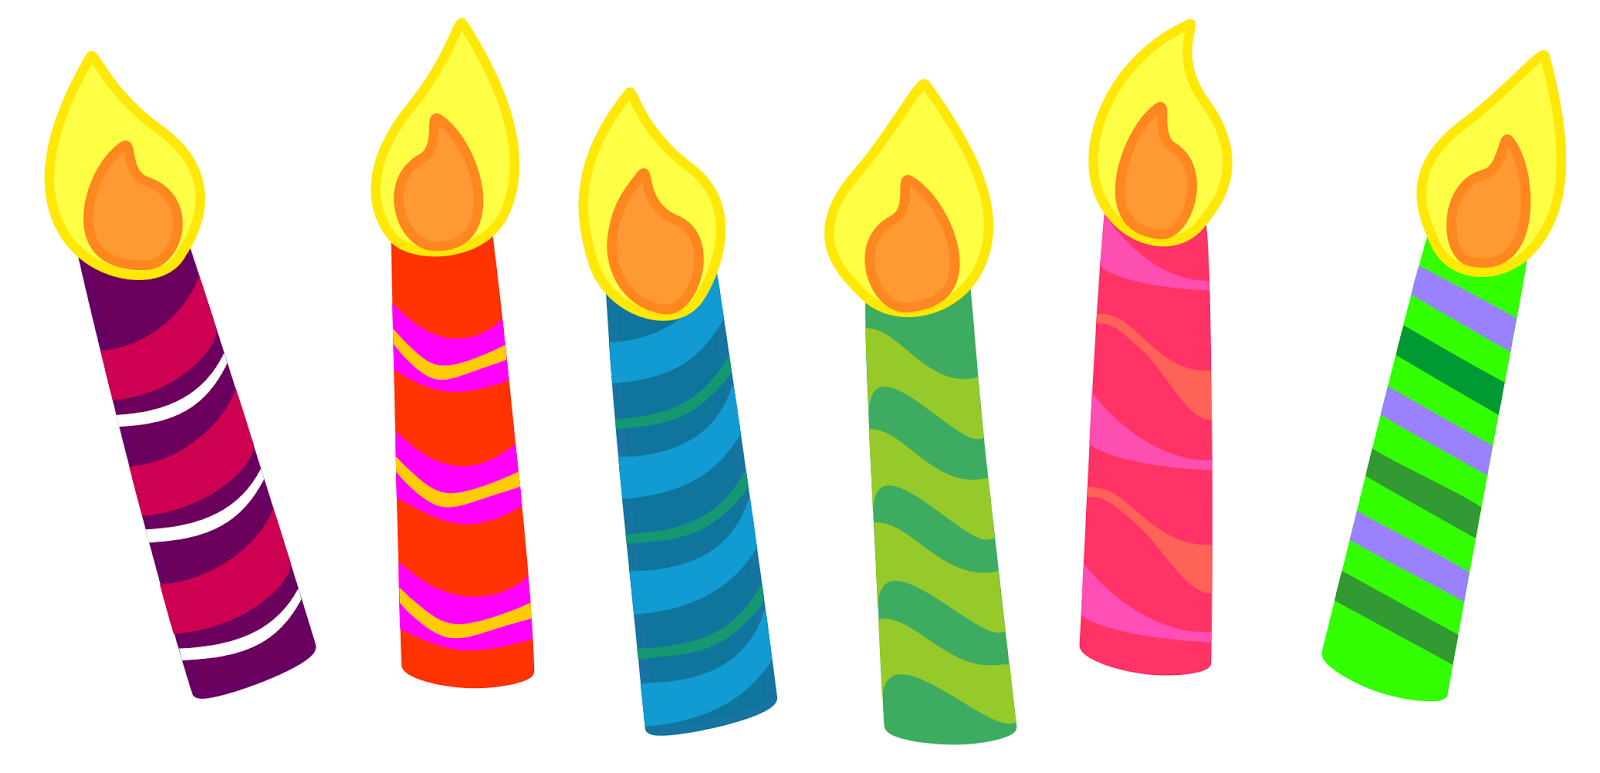 Candles PNG